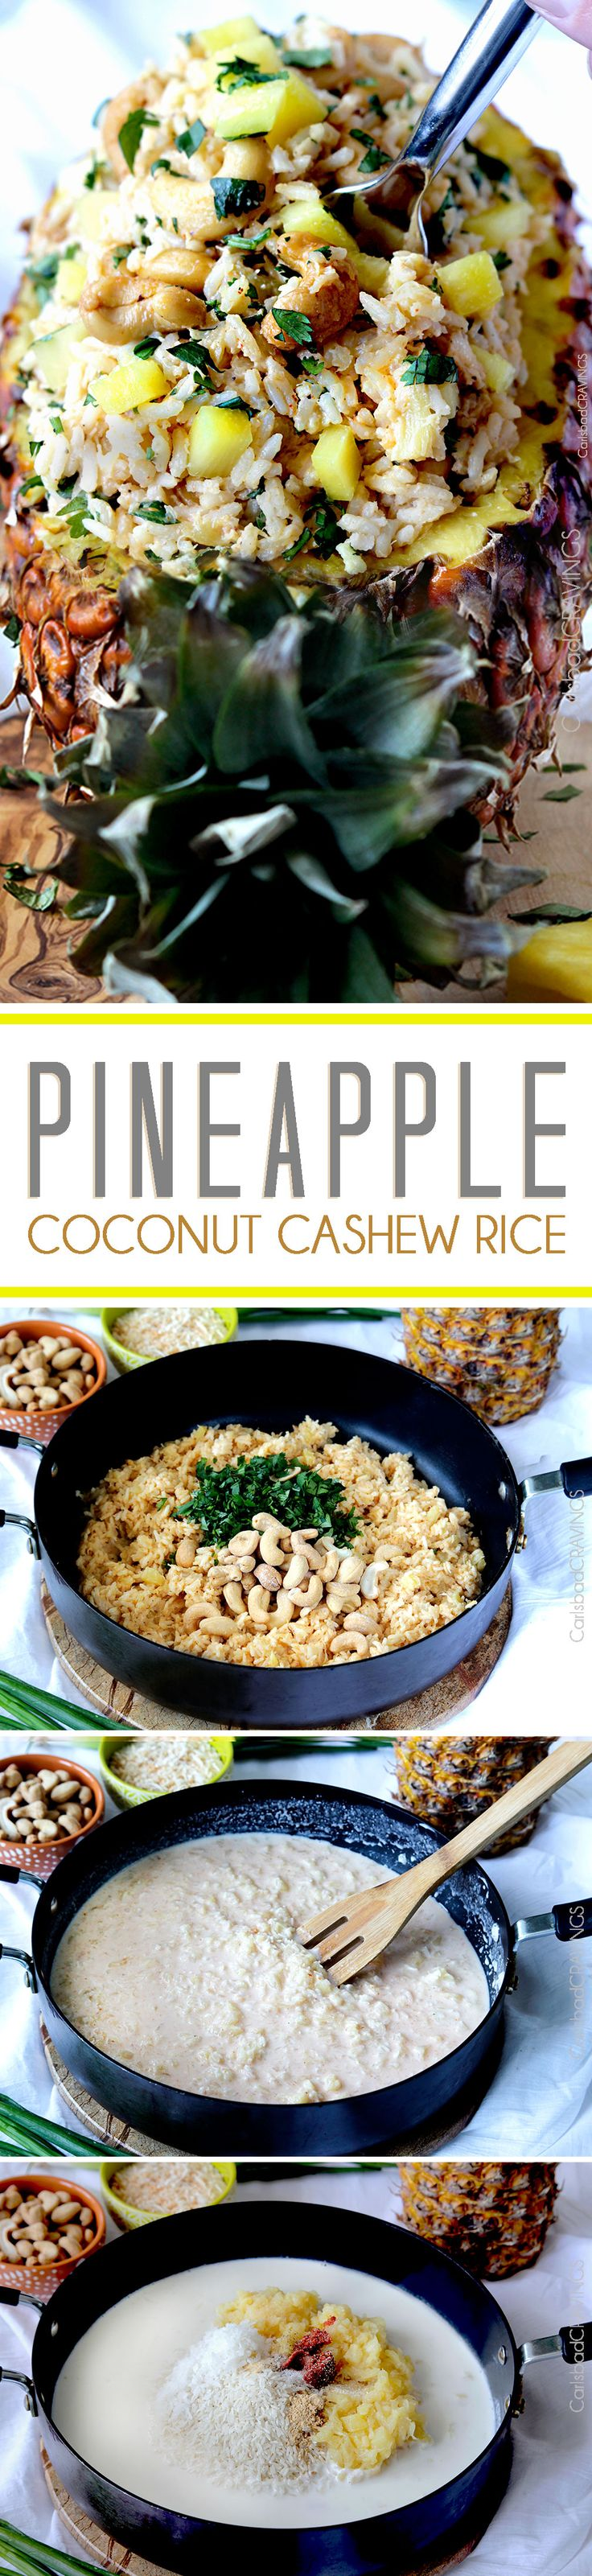 Sweet, slightly creamy Hawaiian Pineapple Coconut Cashew Rice COOKED IN pineapple juice, crushed pineapple and coconut milk, brightened by cilantro, lime and roasted cashews – HEAVENLY! An easy side for any main dish and impressive enough for company. #pineapplerice #coconutrice #Hawaiianrice #cilantrolimerice